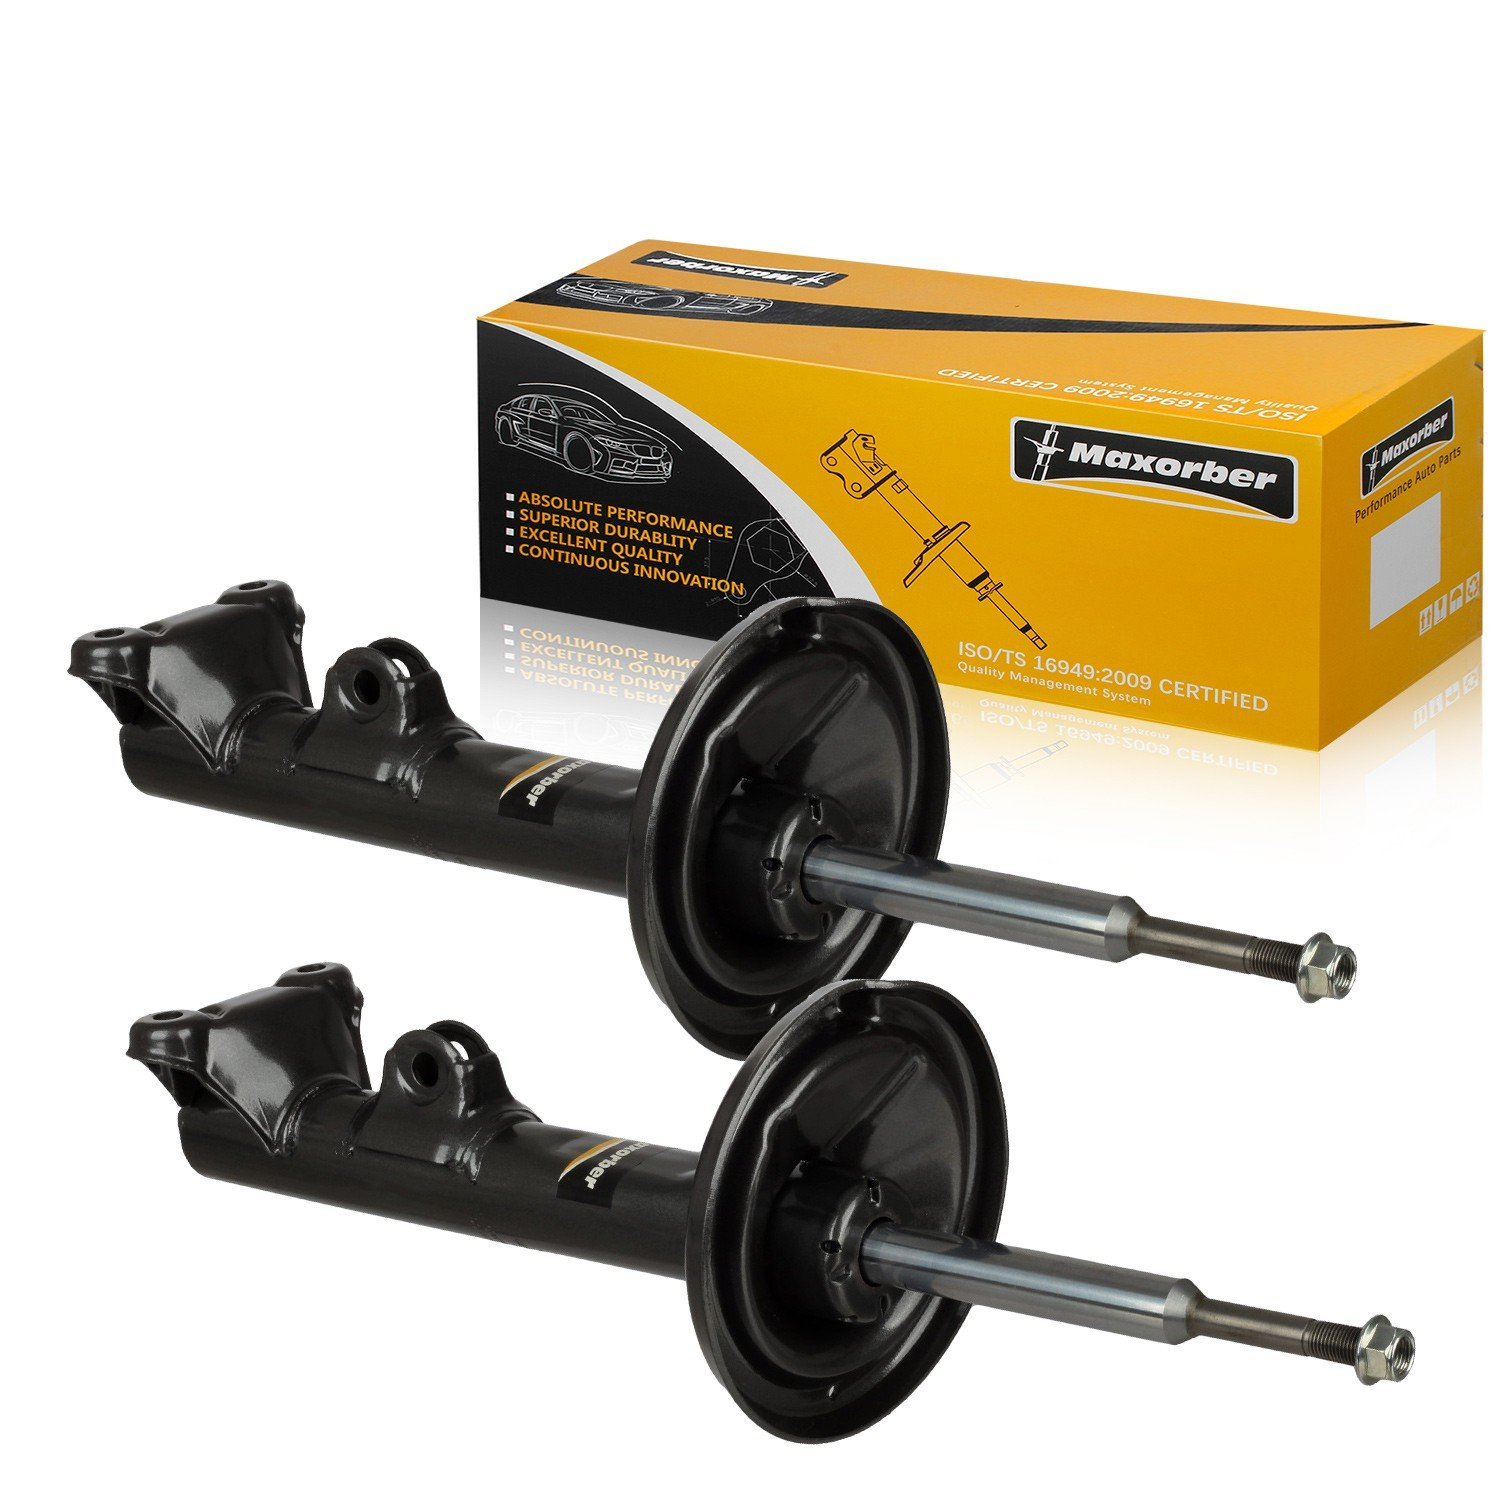 Maxorber Front Pair Shocks Struts Absorber Compatible with 02 03 04 05 06 07 08 09 Mercedes-Benz C230 06 07 C350 06 07 C280 05 06 C55 AMG 01 02 03 04 05 Mercedes-Benz C240 C320, 335920 71488